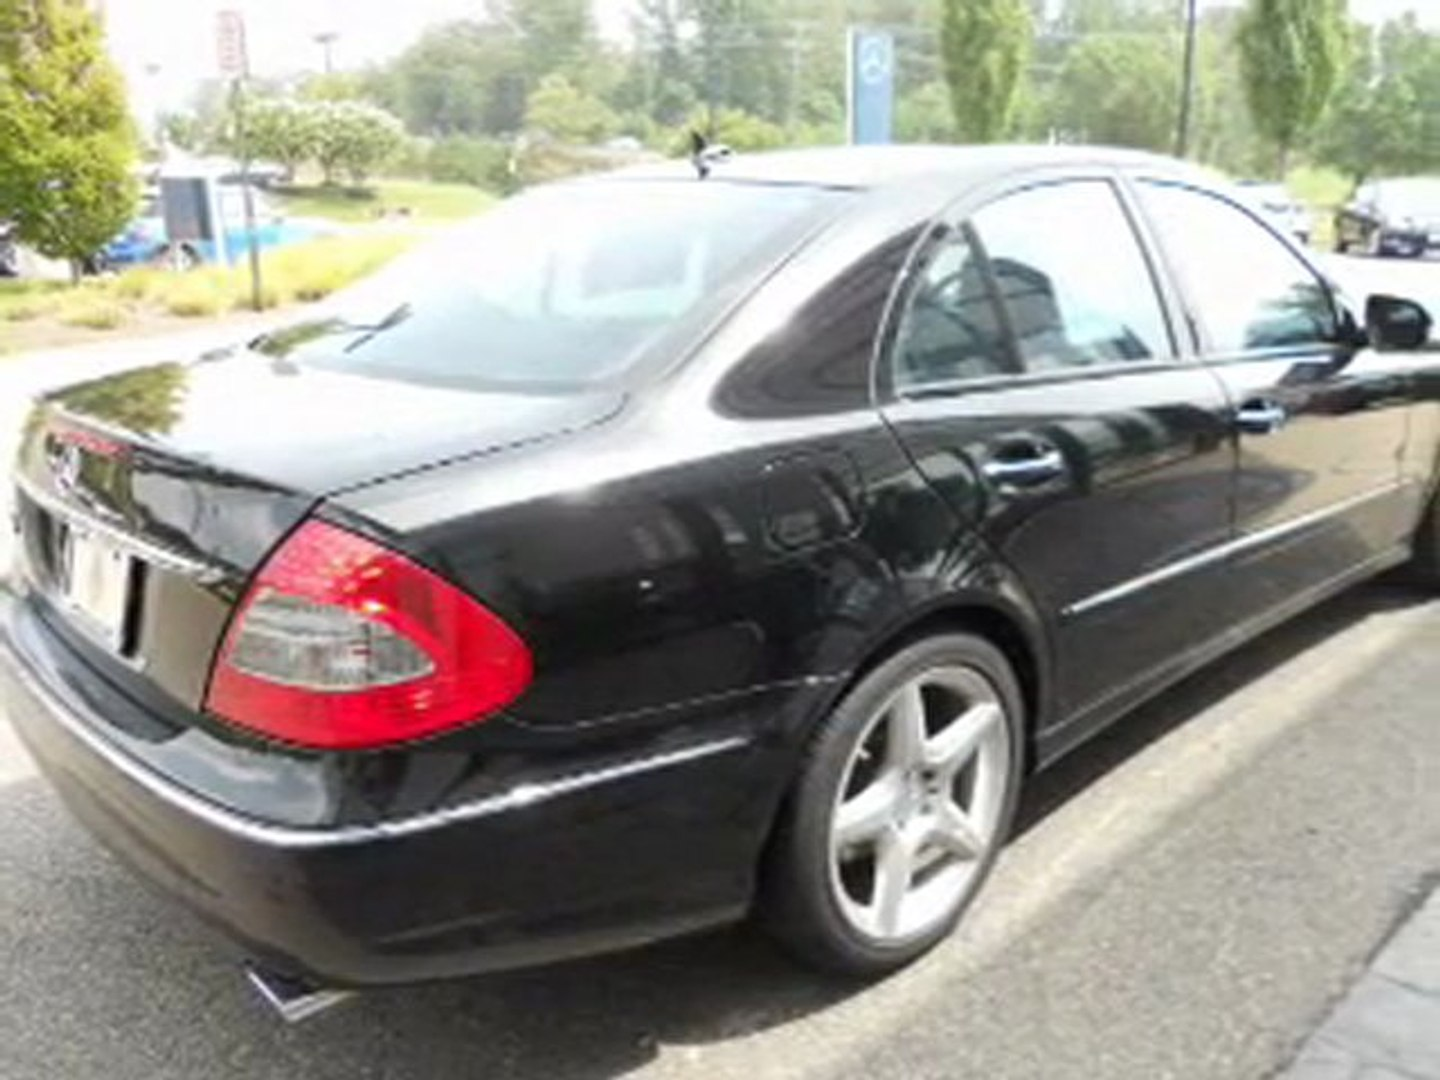 2009 Mercedes-Benz E-Class for sale in Midlothian VA - Certified Used Mercedes-Benz by EveryCarListe